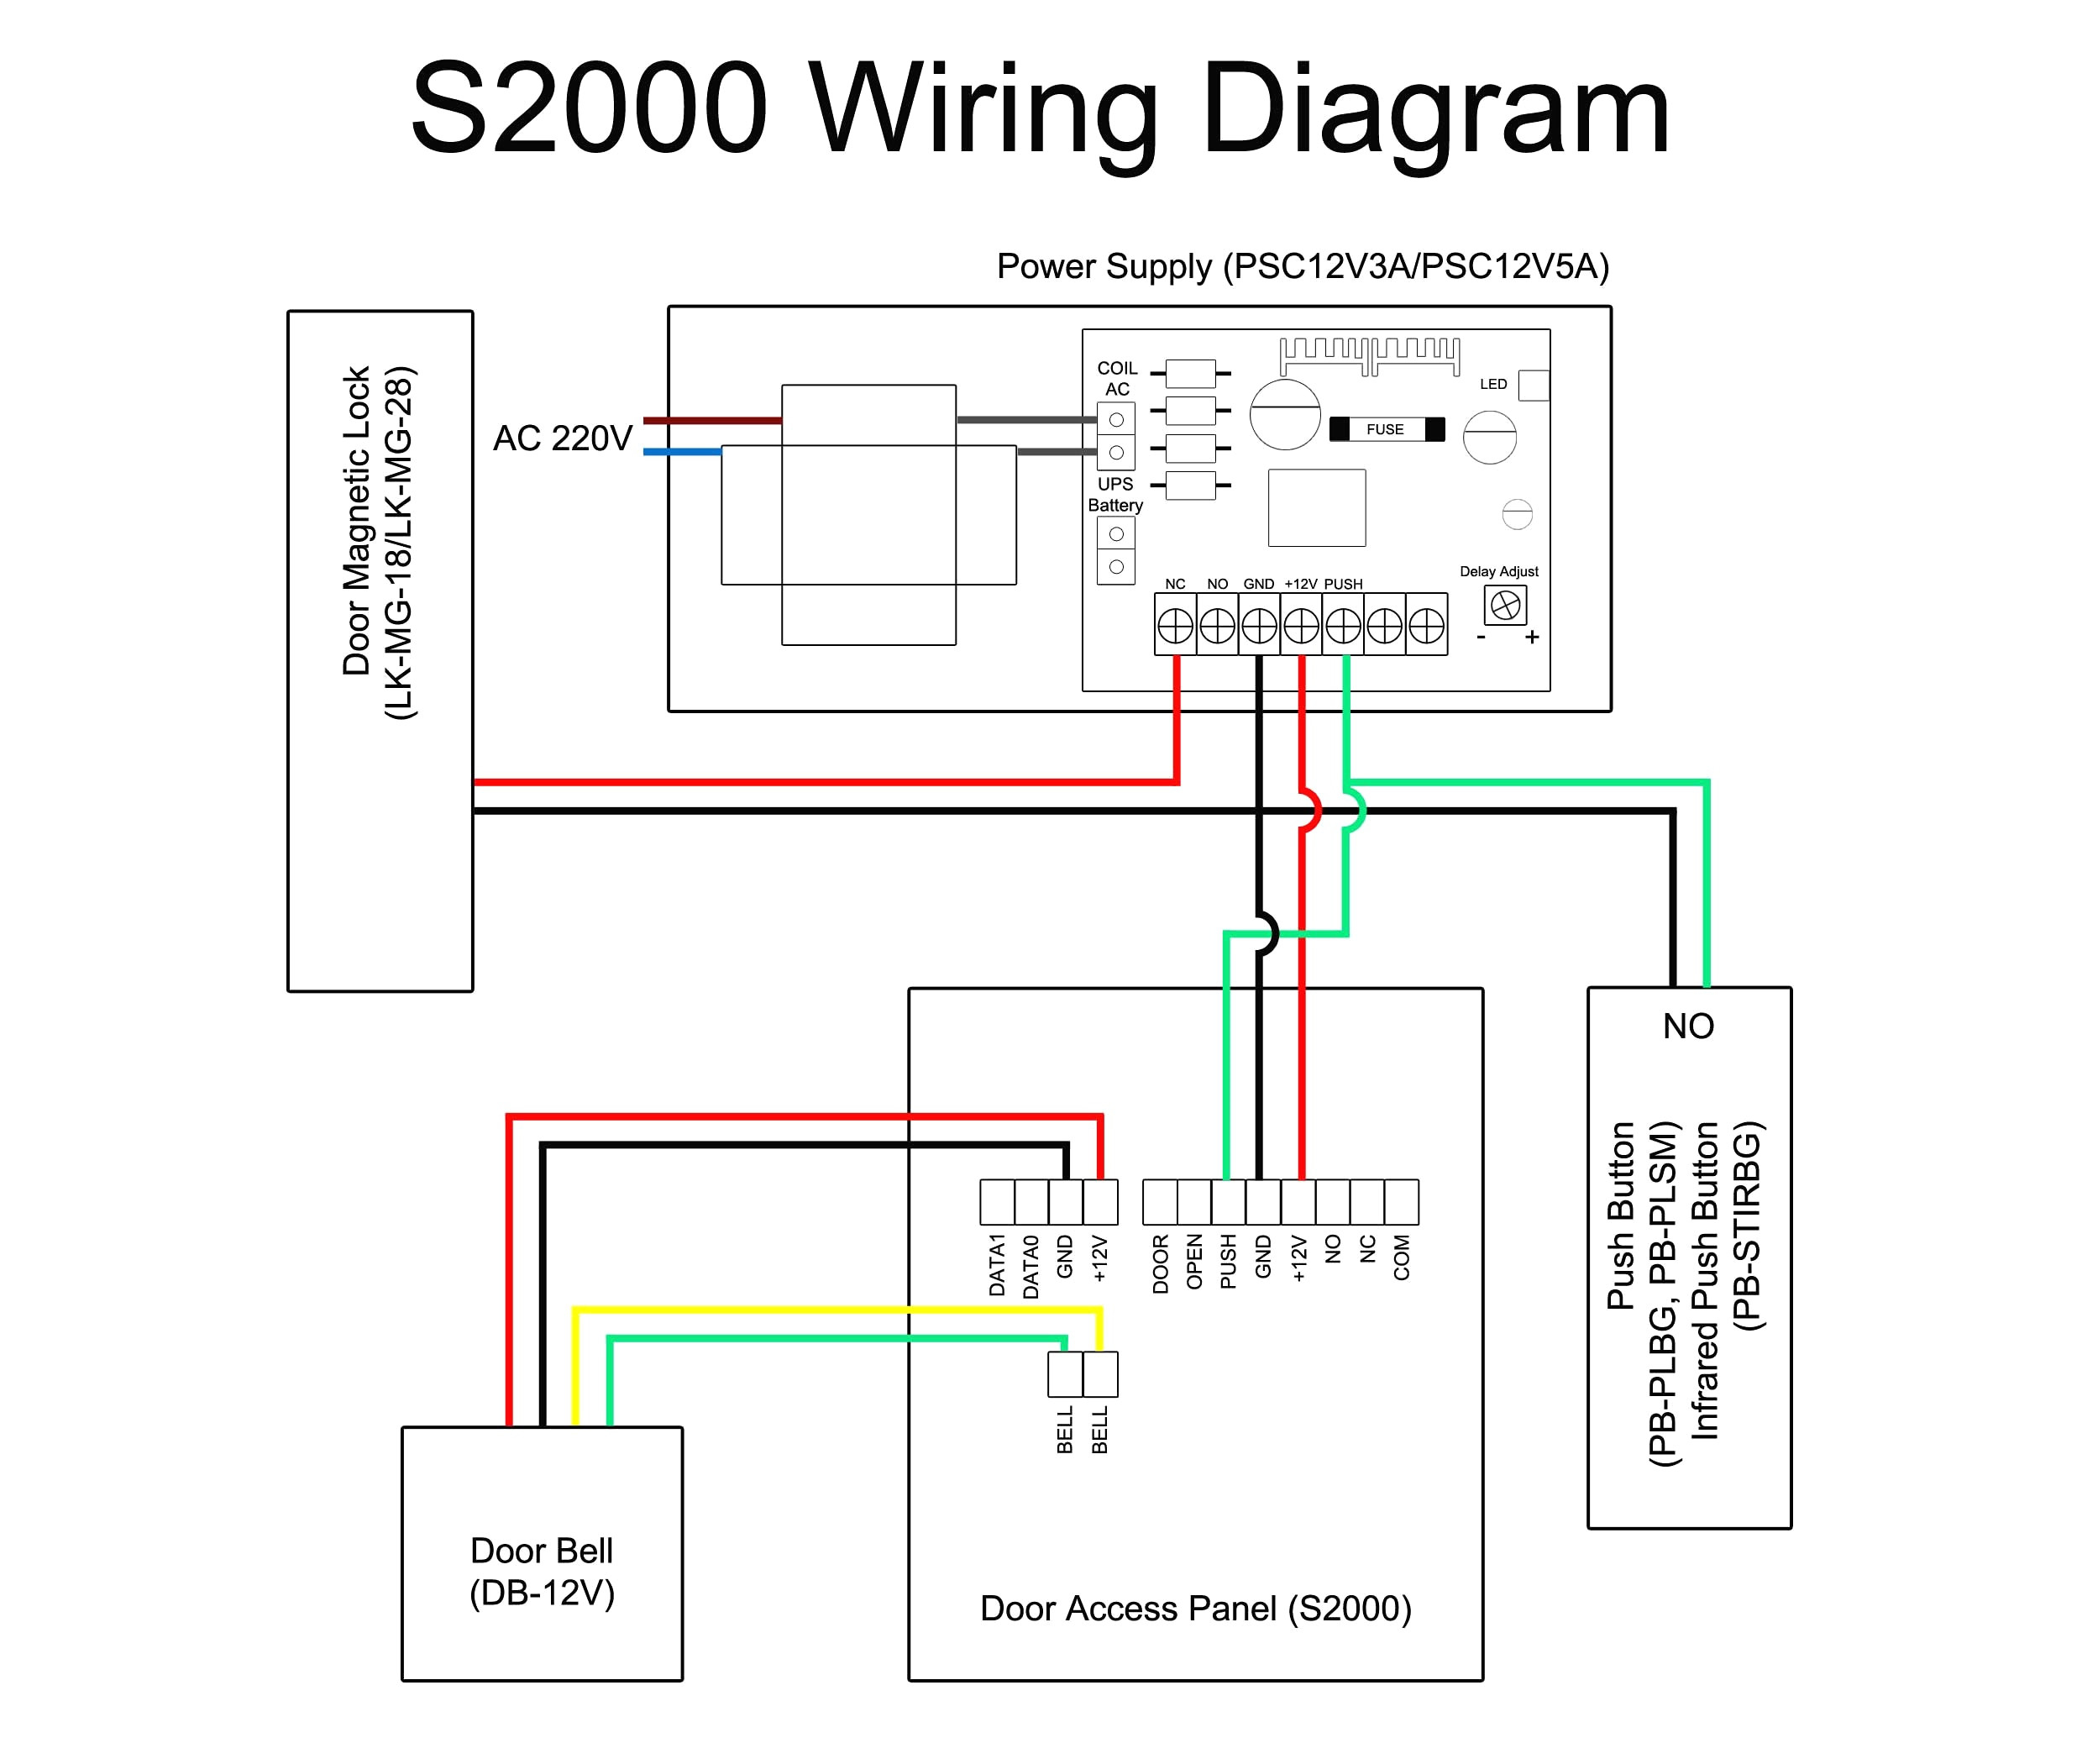 Wiring Diagram Control 4 System - Wiring Diagrams Dash